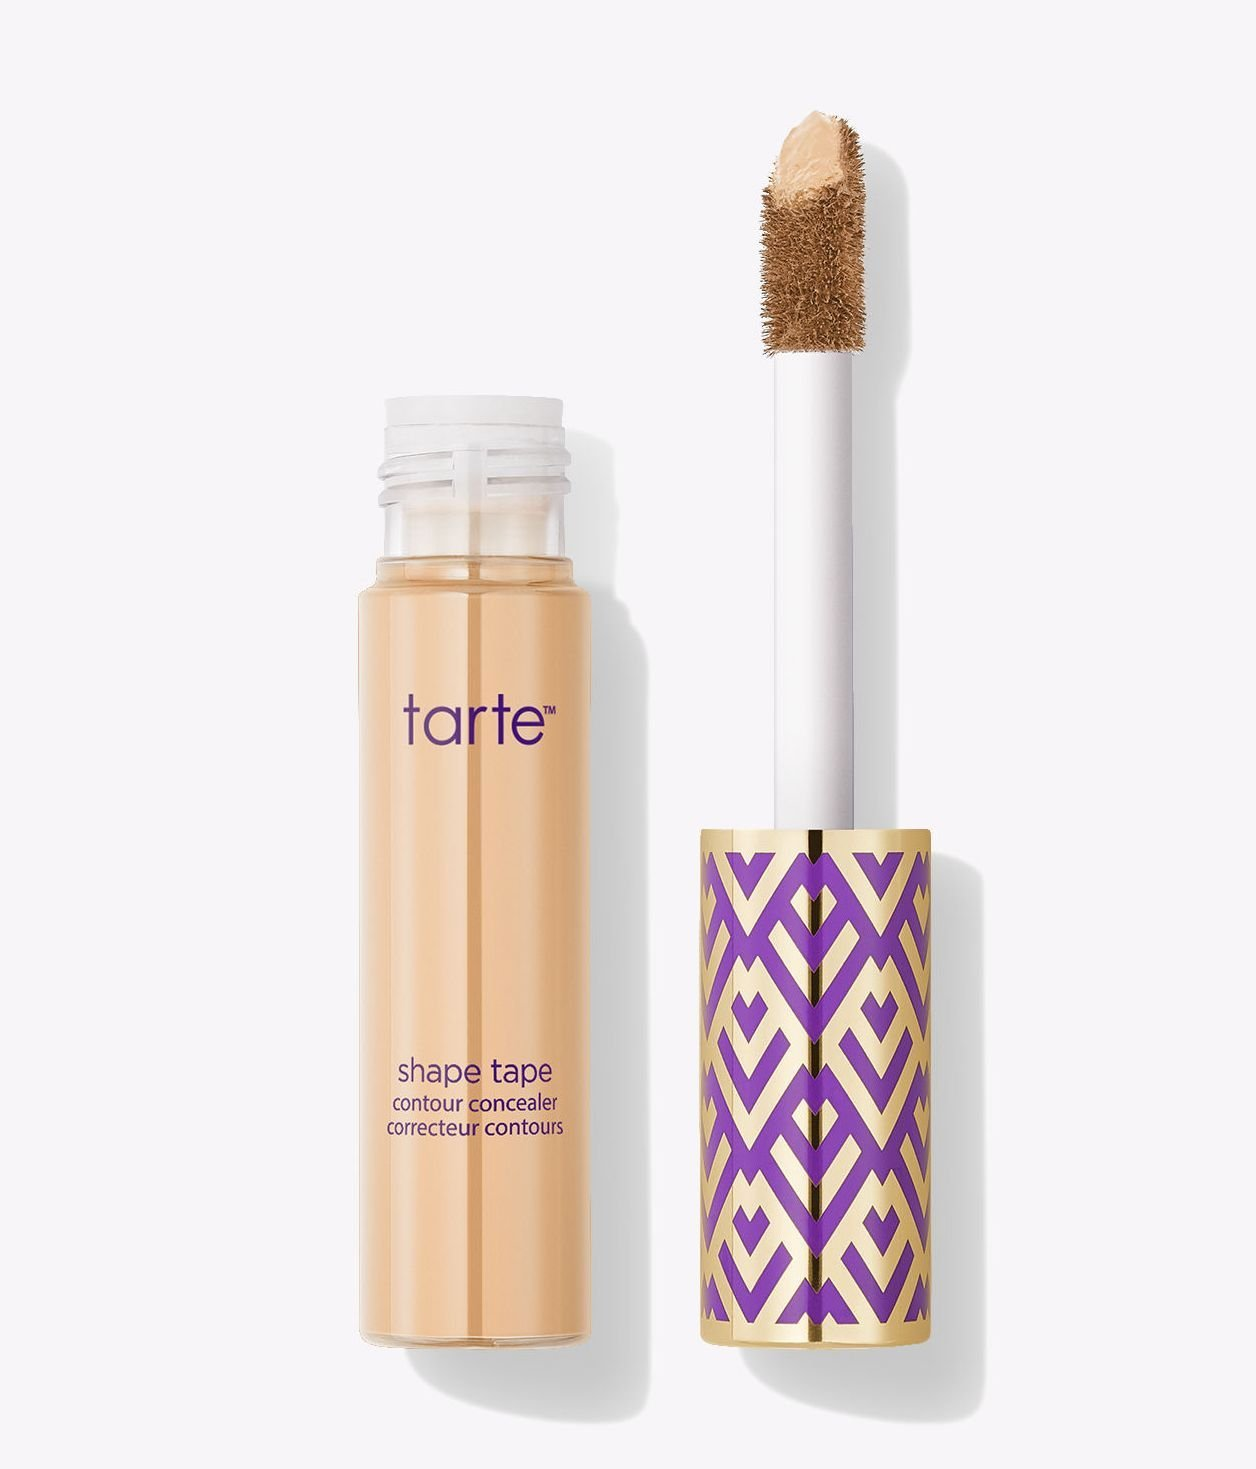 Tarte Shape Tape Contour Concealer  Full Size -  Fair Light Neutral 16N